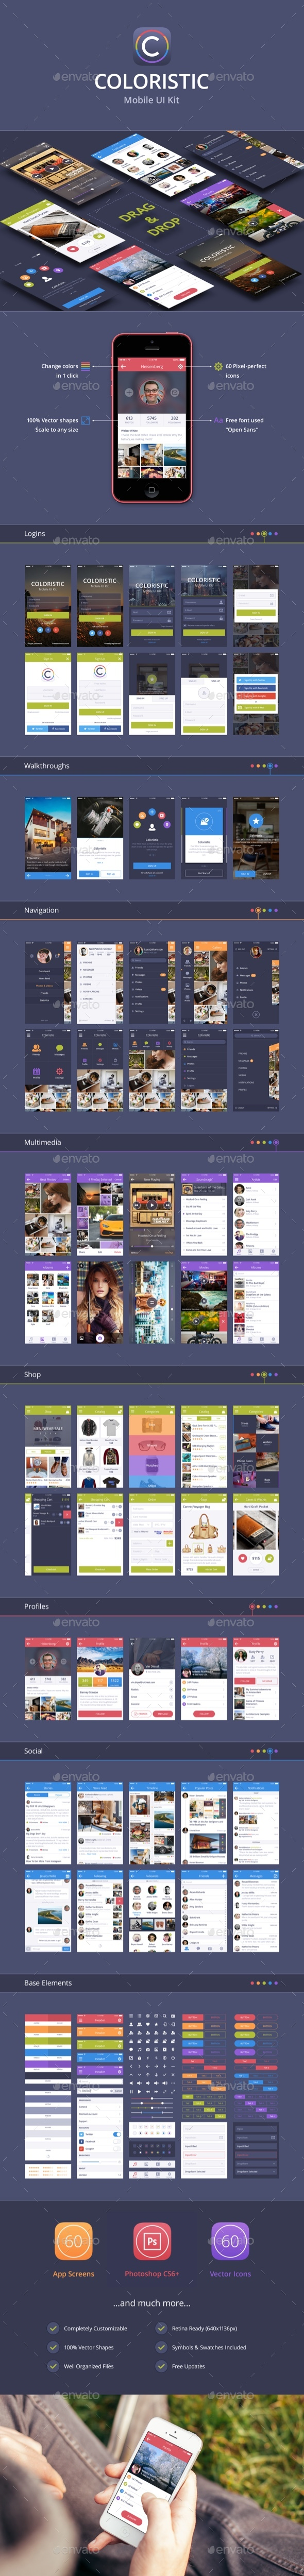 Mugen App UI KIT - Walkthroughs (User Interfaces)